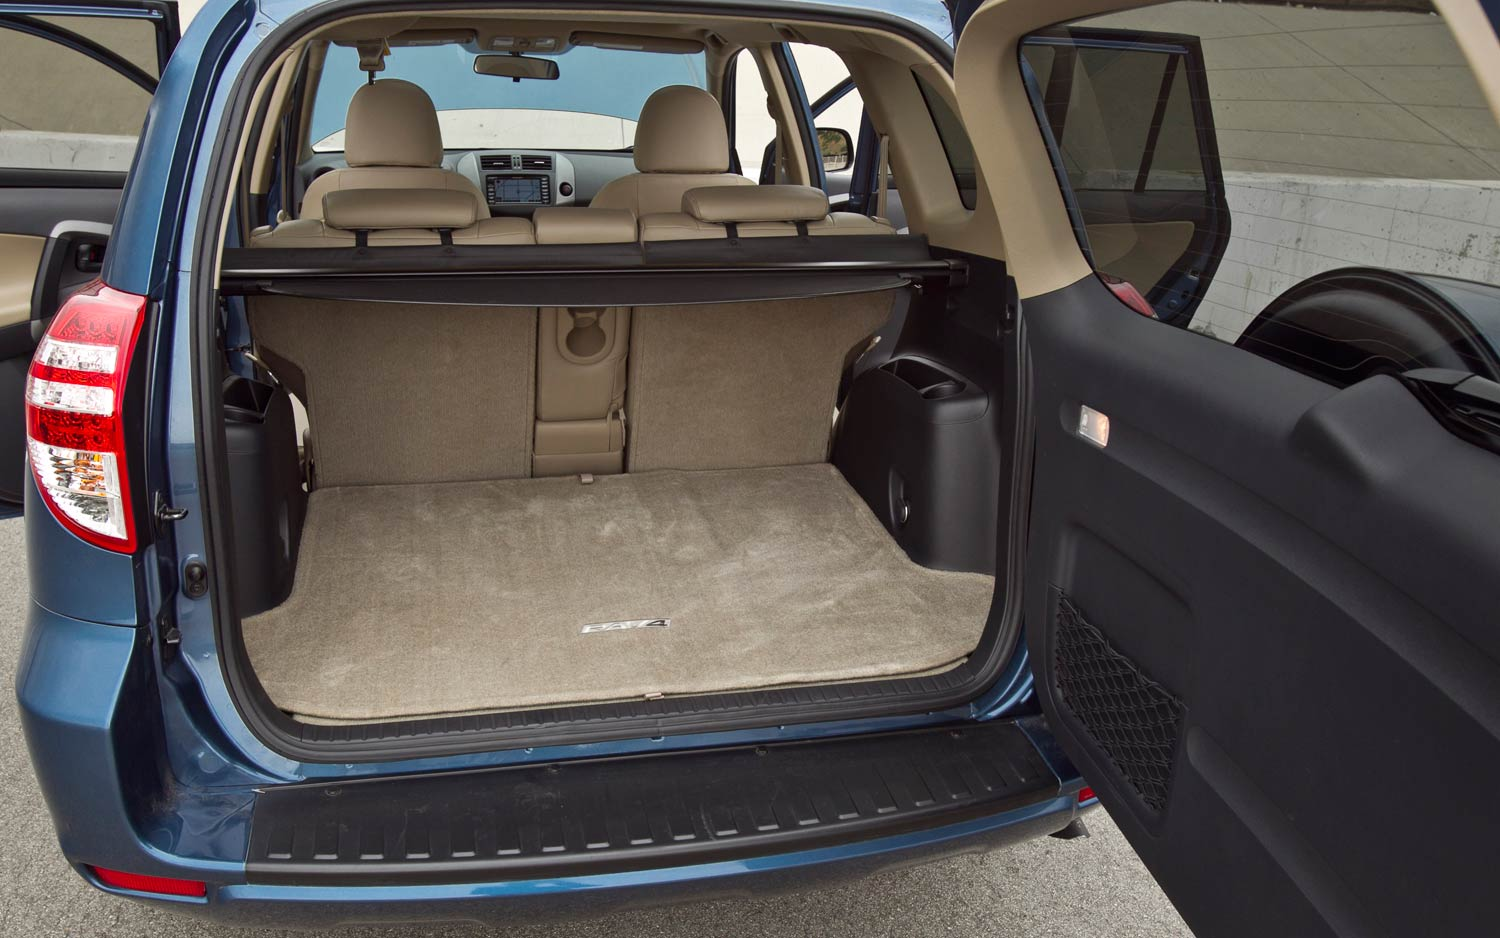 2011 Toyota Rav4 Limited V 6 Rear Interior Cargo Space